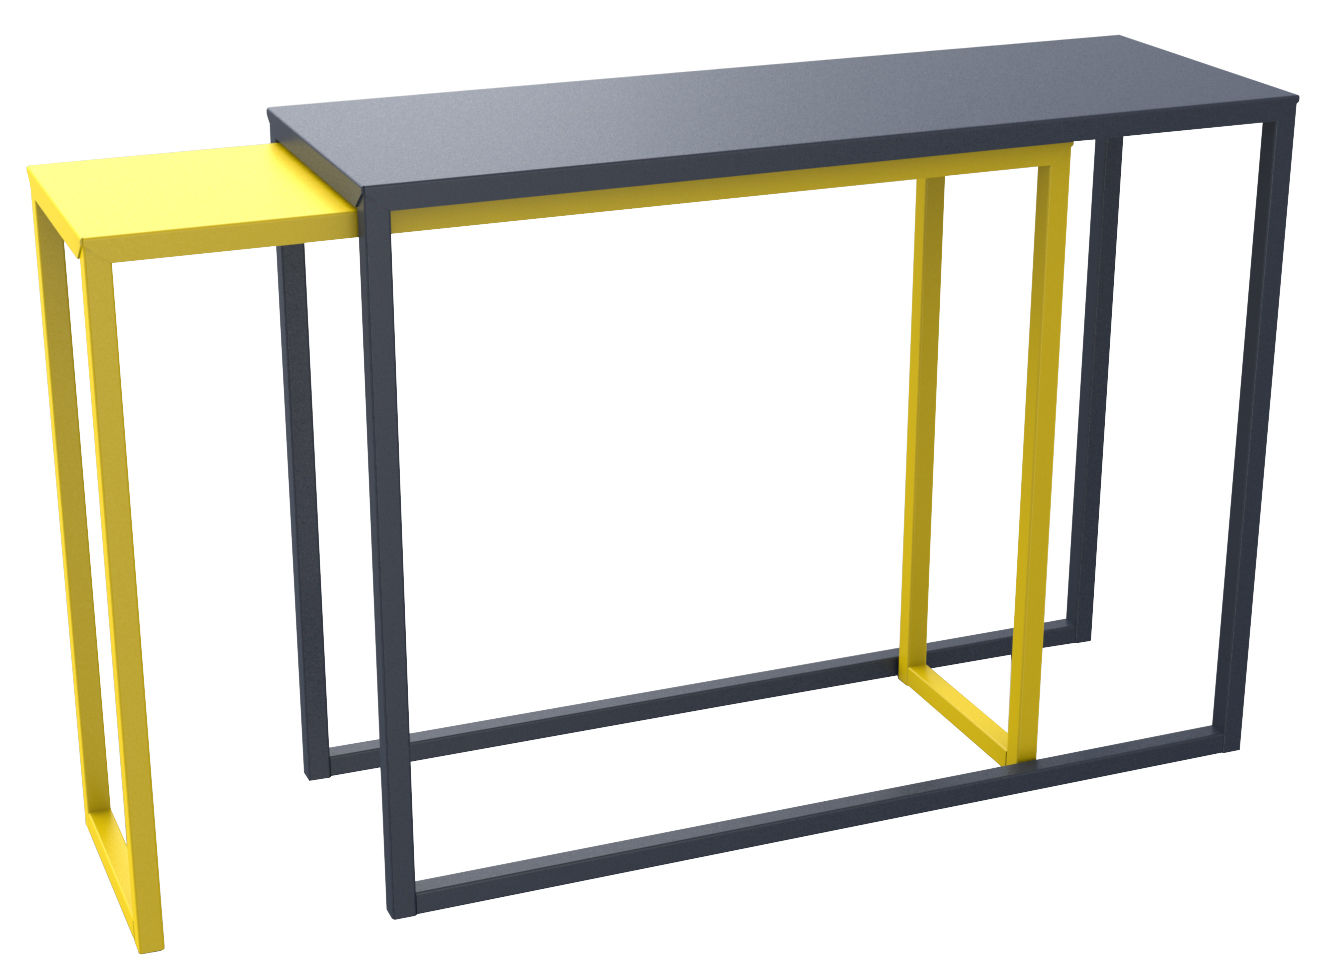 Furniture - Console Tables - Burga Console by Matière Grise - Azurite / Yellow - Epoxy painted steel